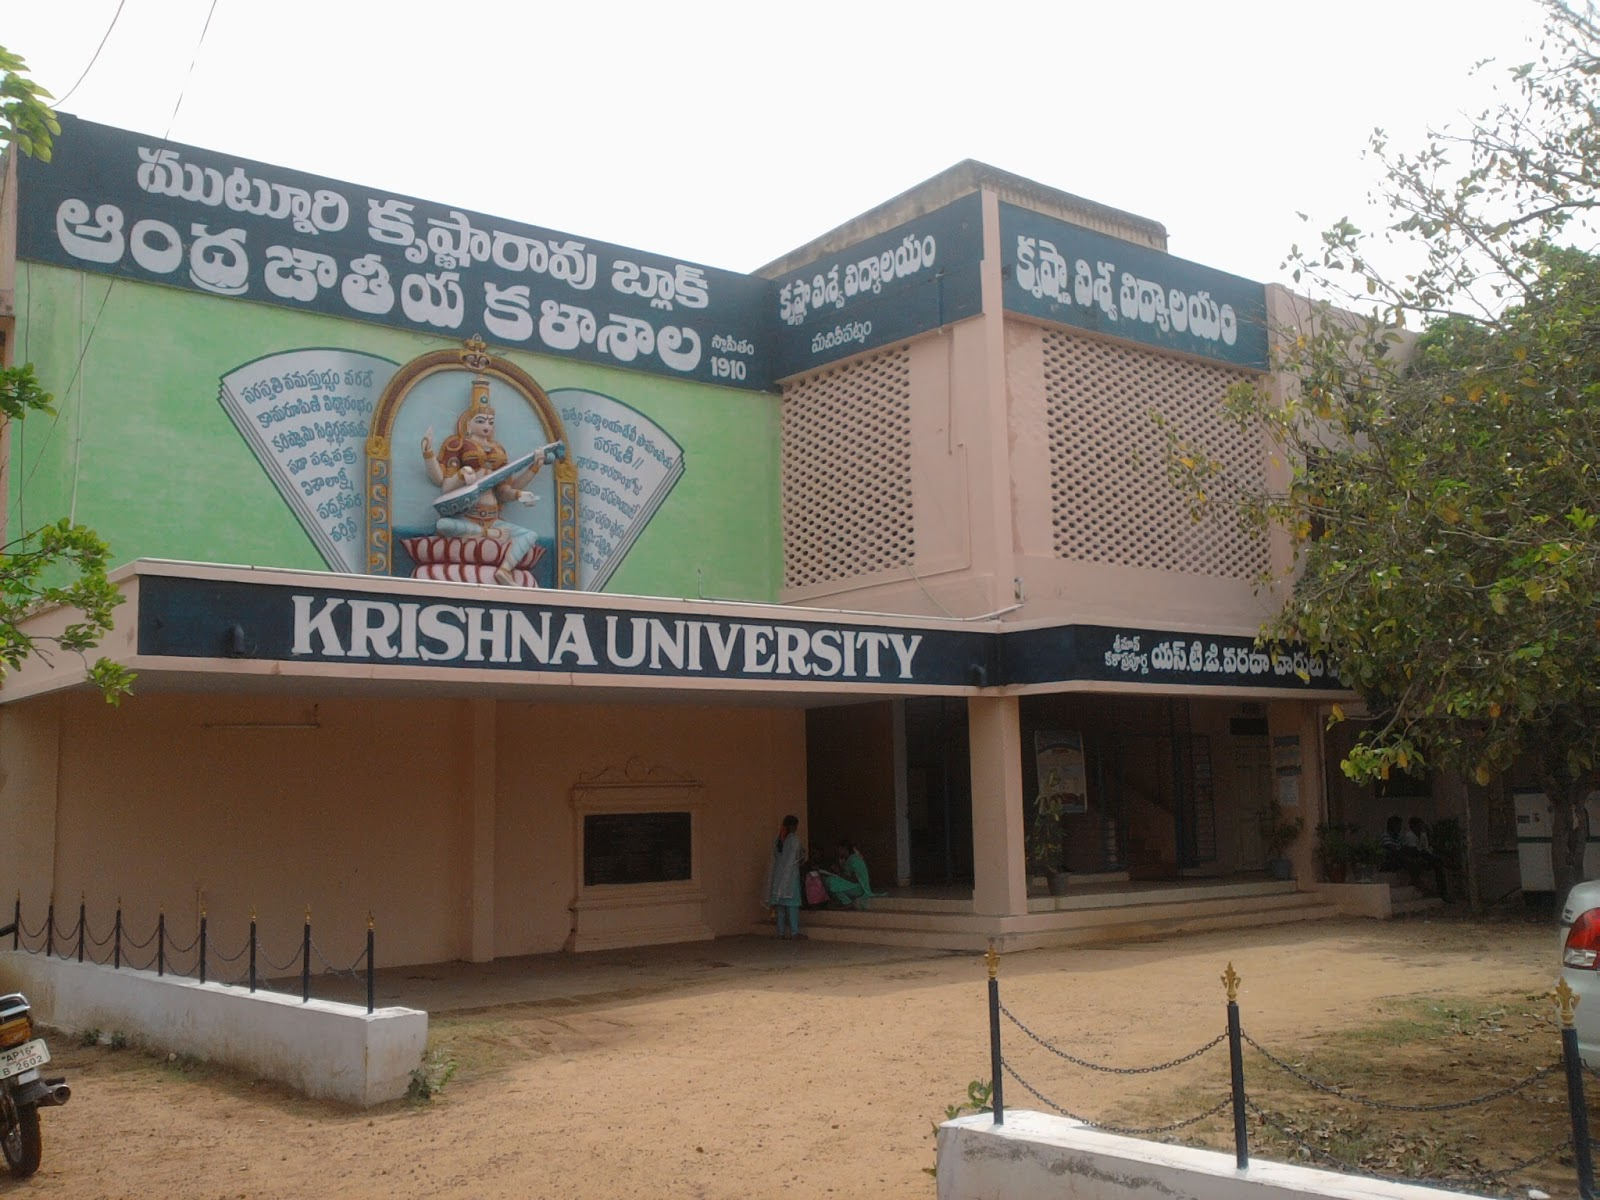 Krishna University Entrance Test (KRUCET) 2015 Notification and Exam Date